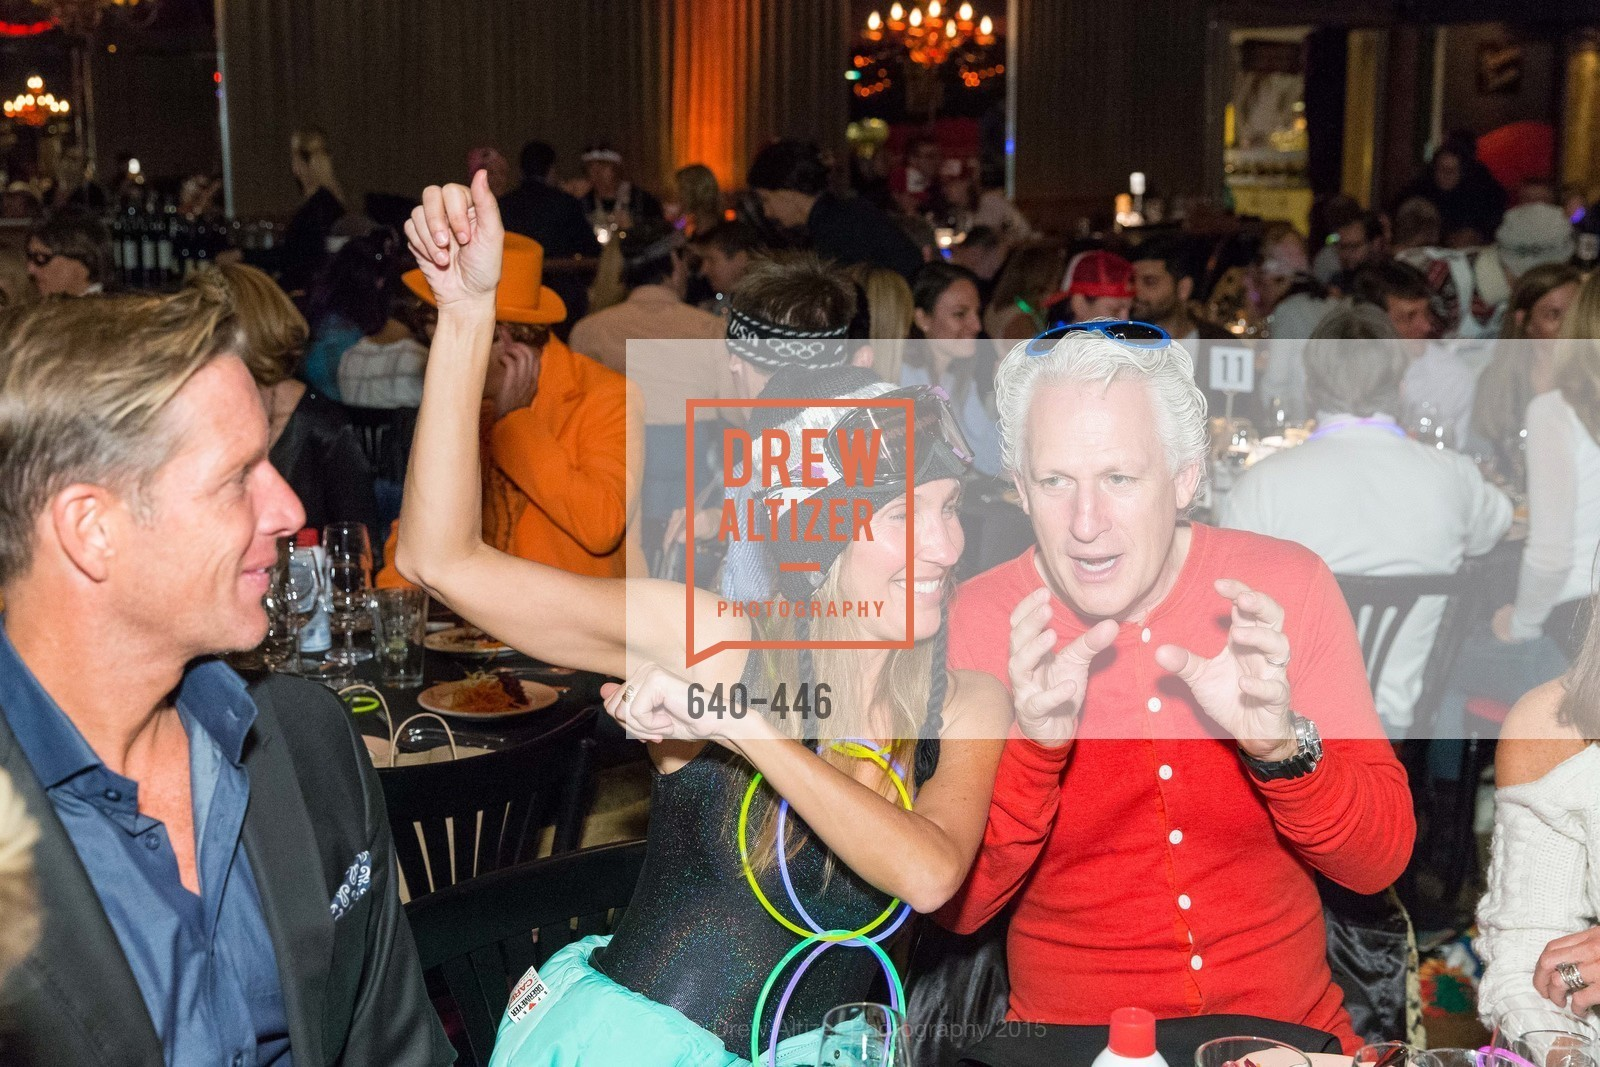 Karen Block, Philip Raiser, U.S. Ski and Snowboard Foundation's Snow Ball, Bimbo's 365 Club. 1025 Columbus Ave, November 7th, 2015,Drew Altizer, Drew Altizer Photography, full-service agency, private events, San Francisco photographer, photographer california